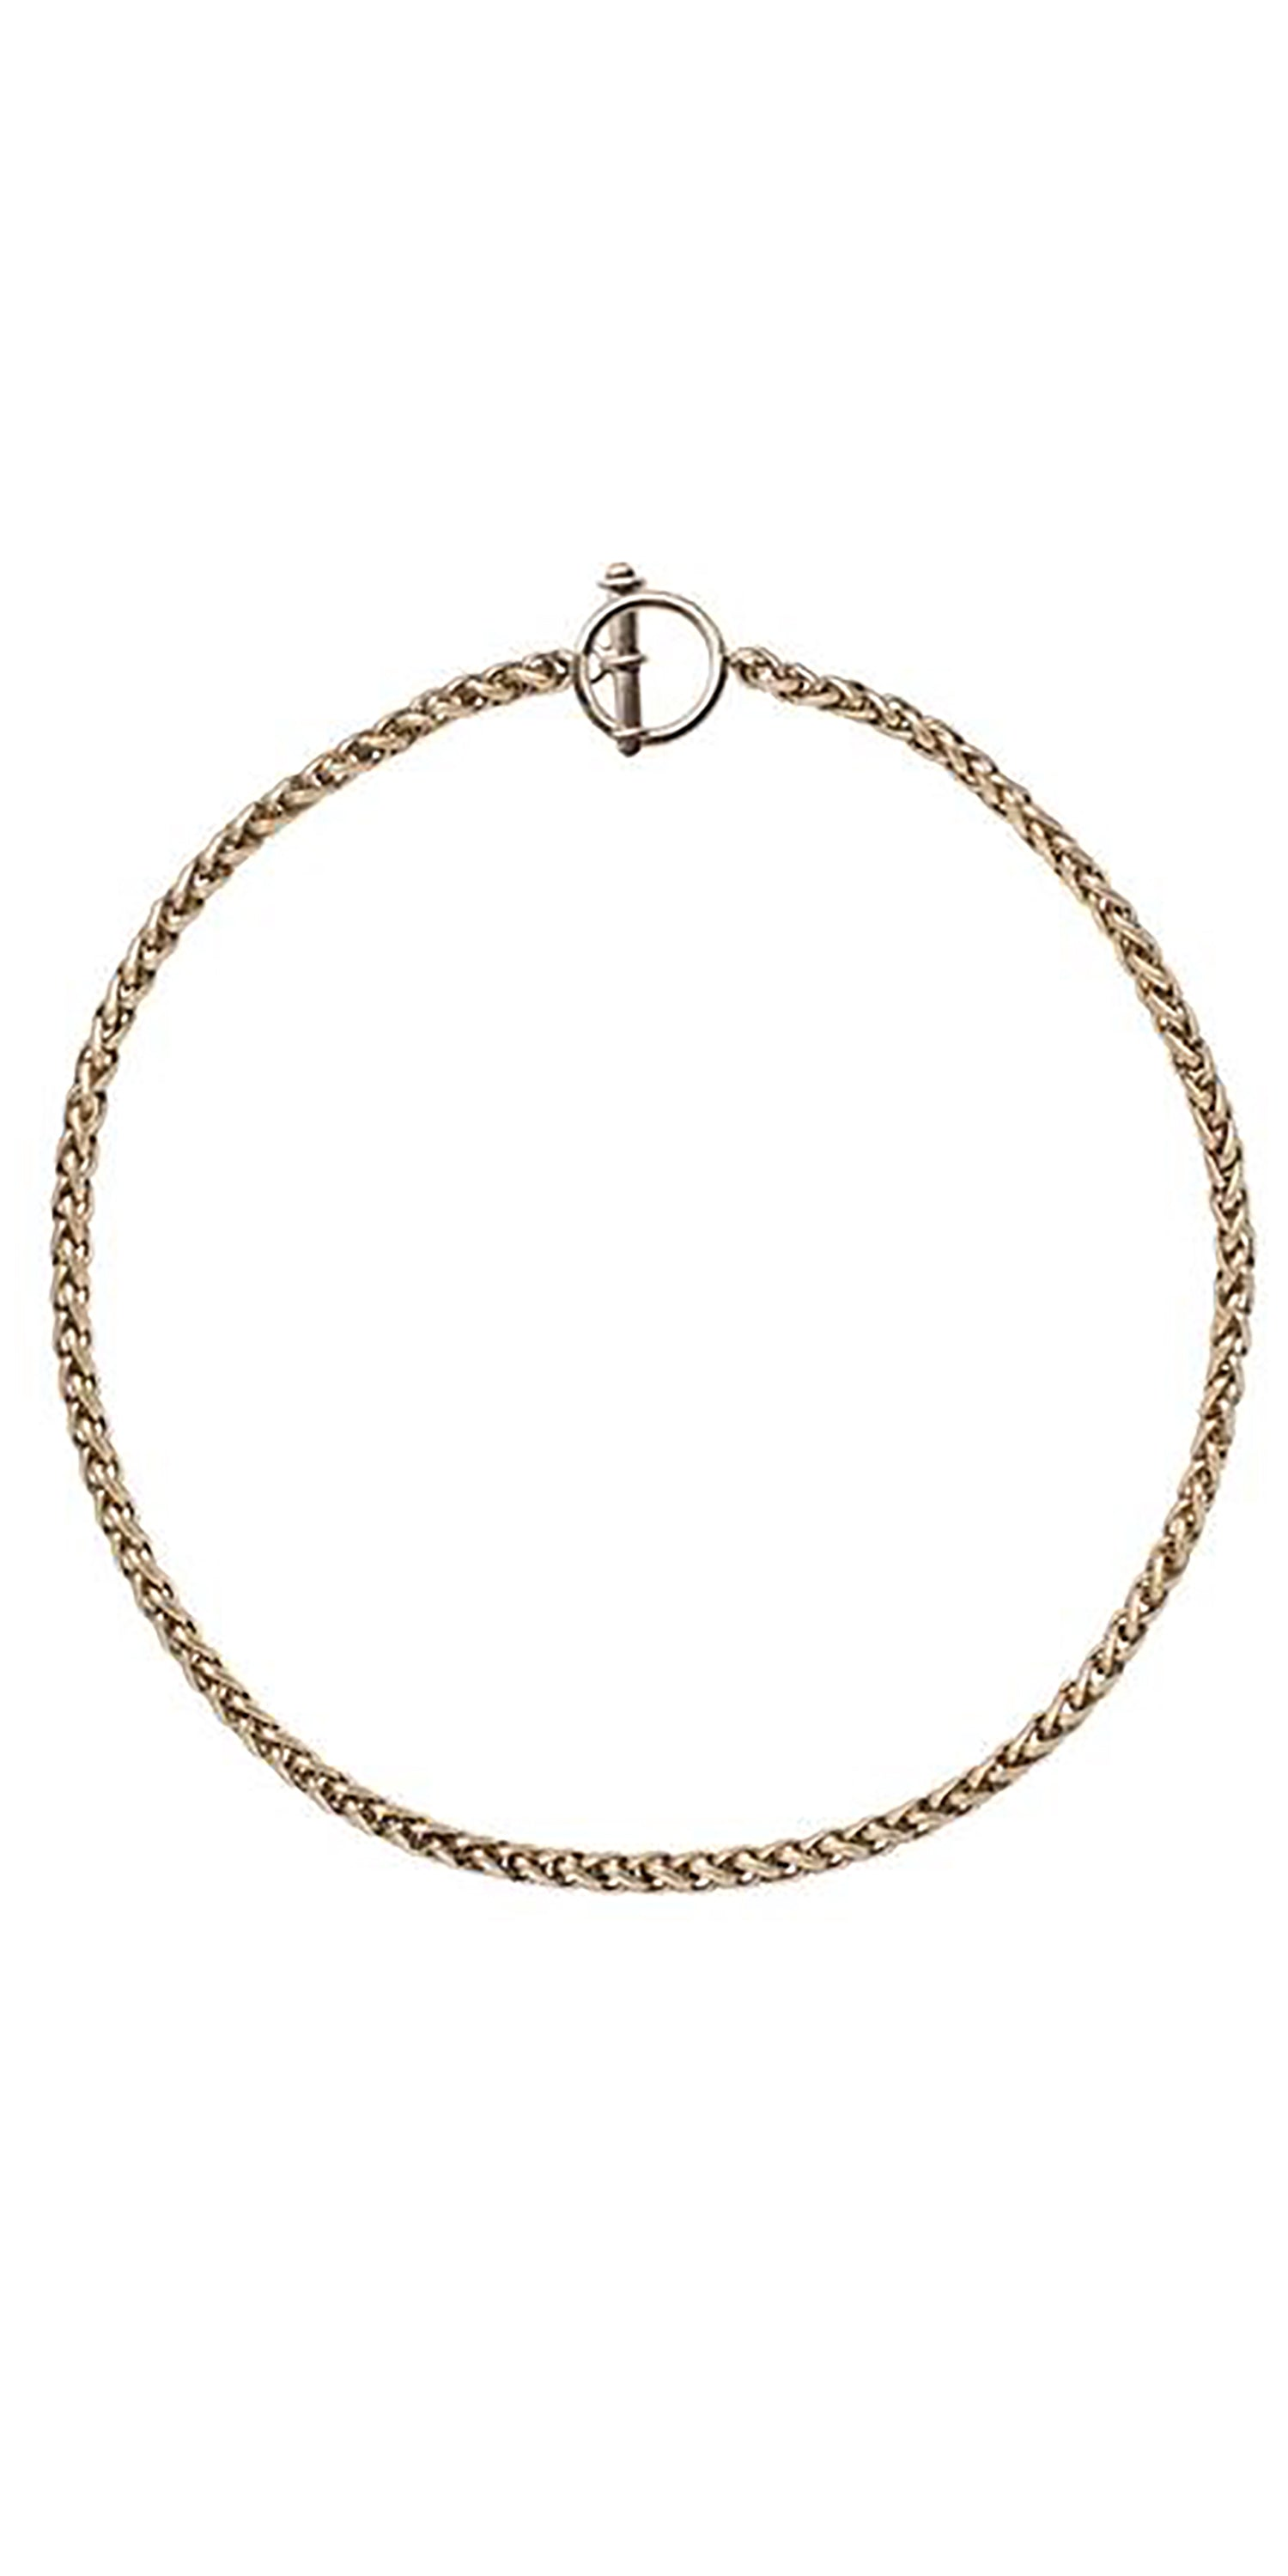 bracelet modern products gauri andy guari bronze lifschutz necklace